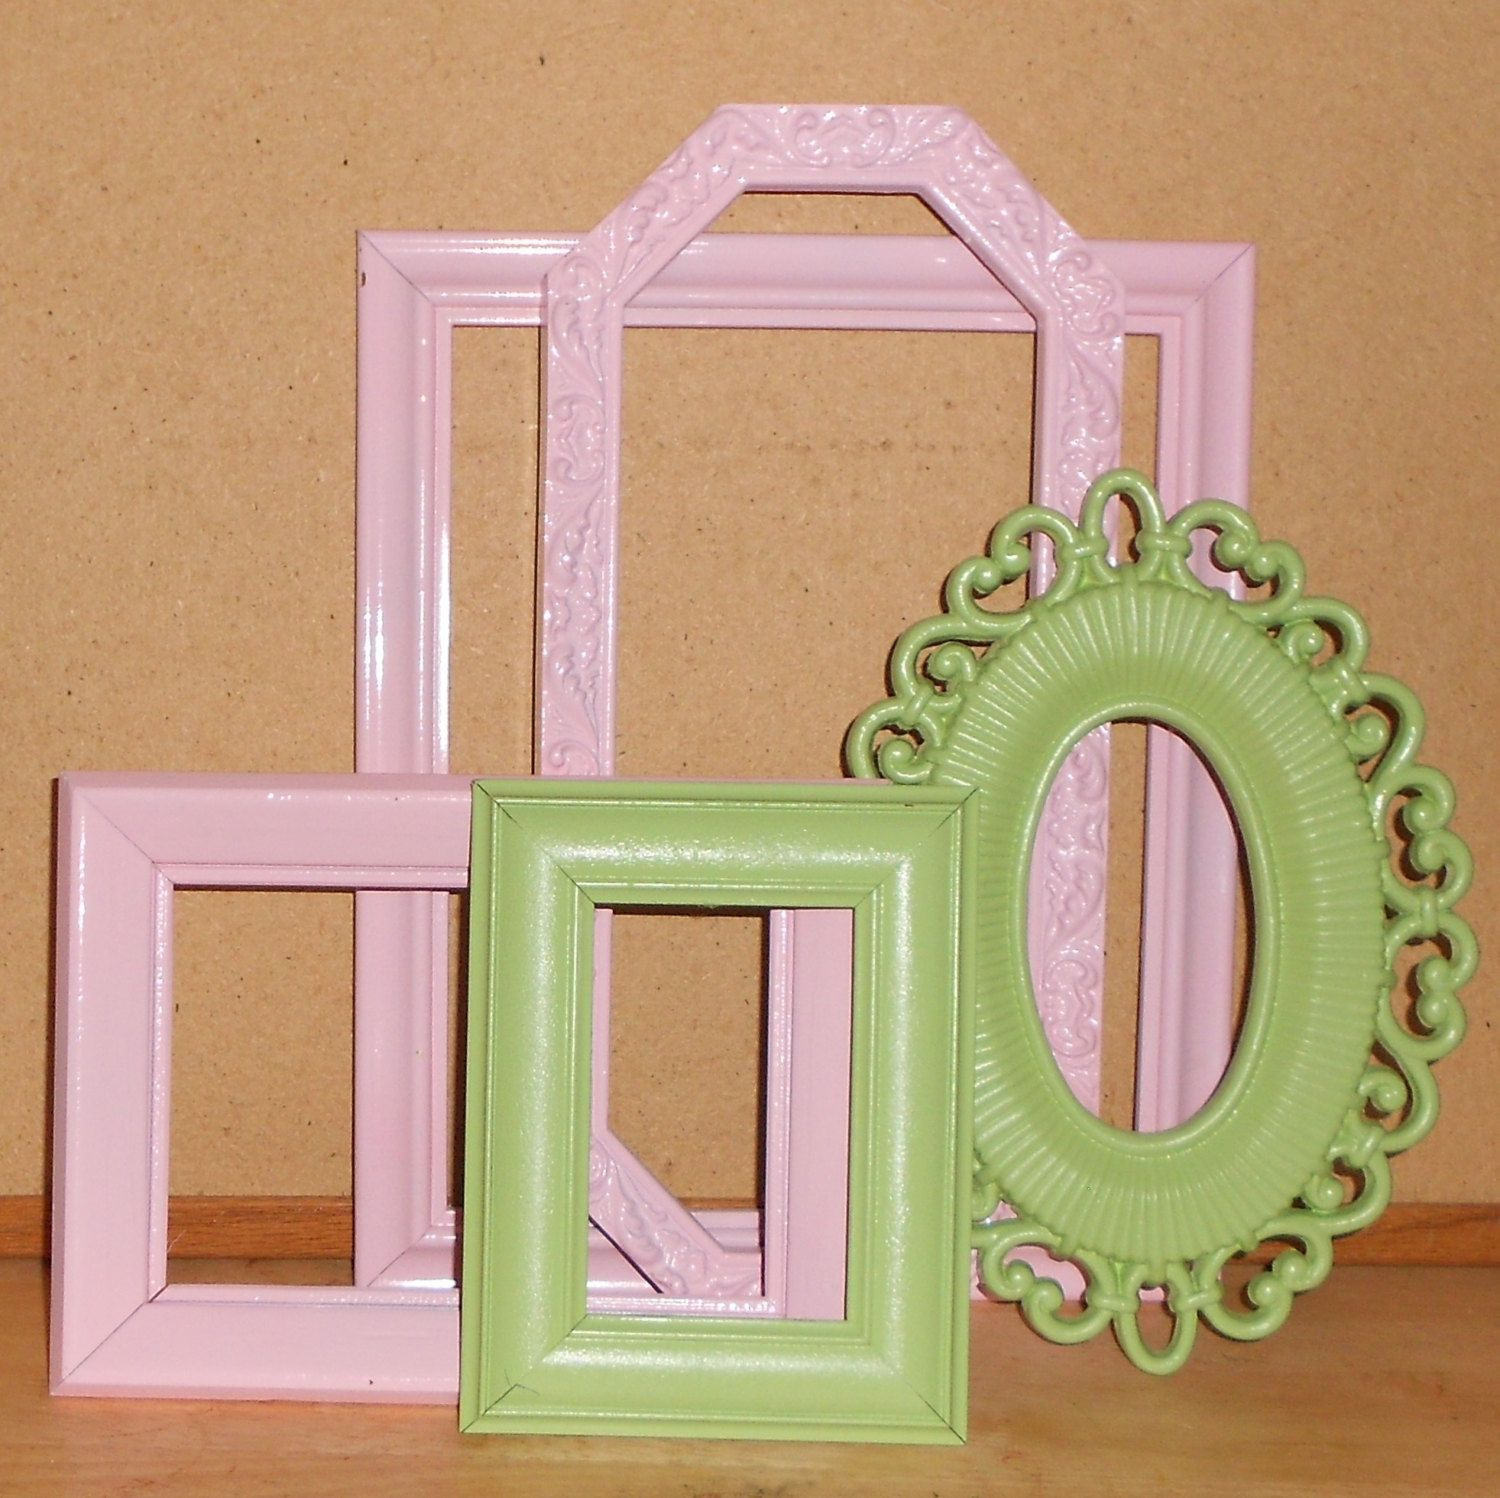 Pink and green picture frames 5 girly girl picture frames pink 5 girly girl picture frames pink green shabby chic country cottage wedding jeuxipadfo Images